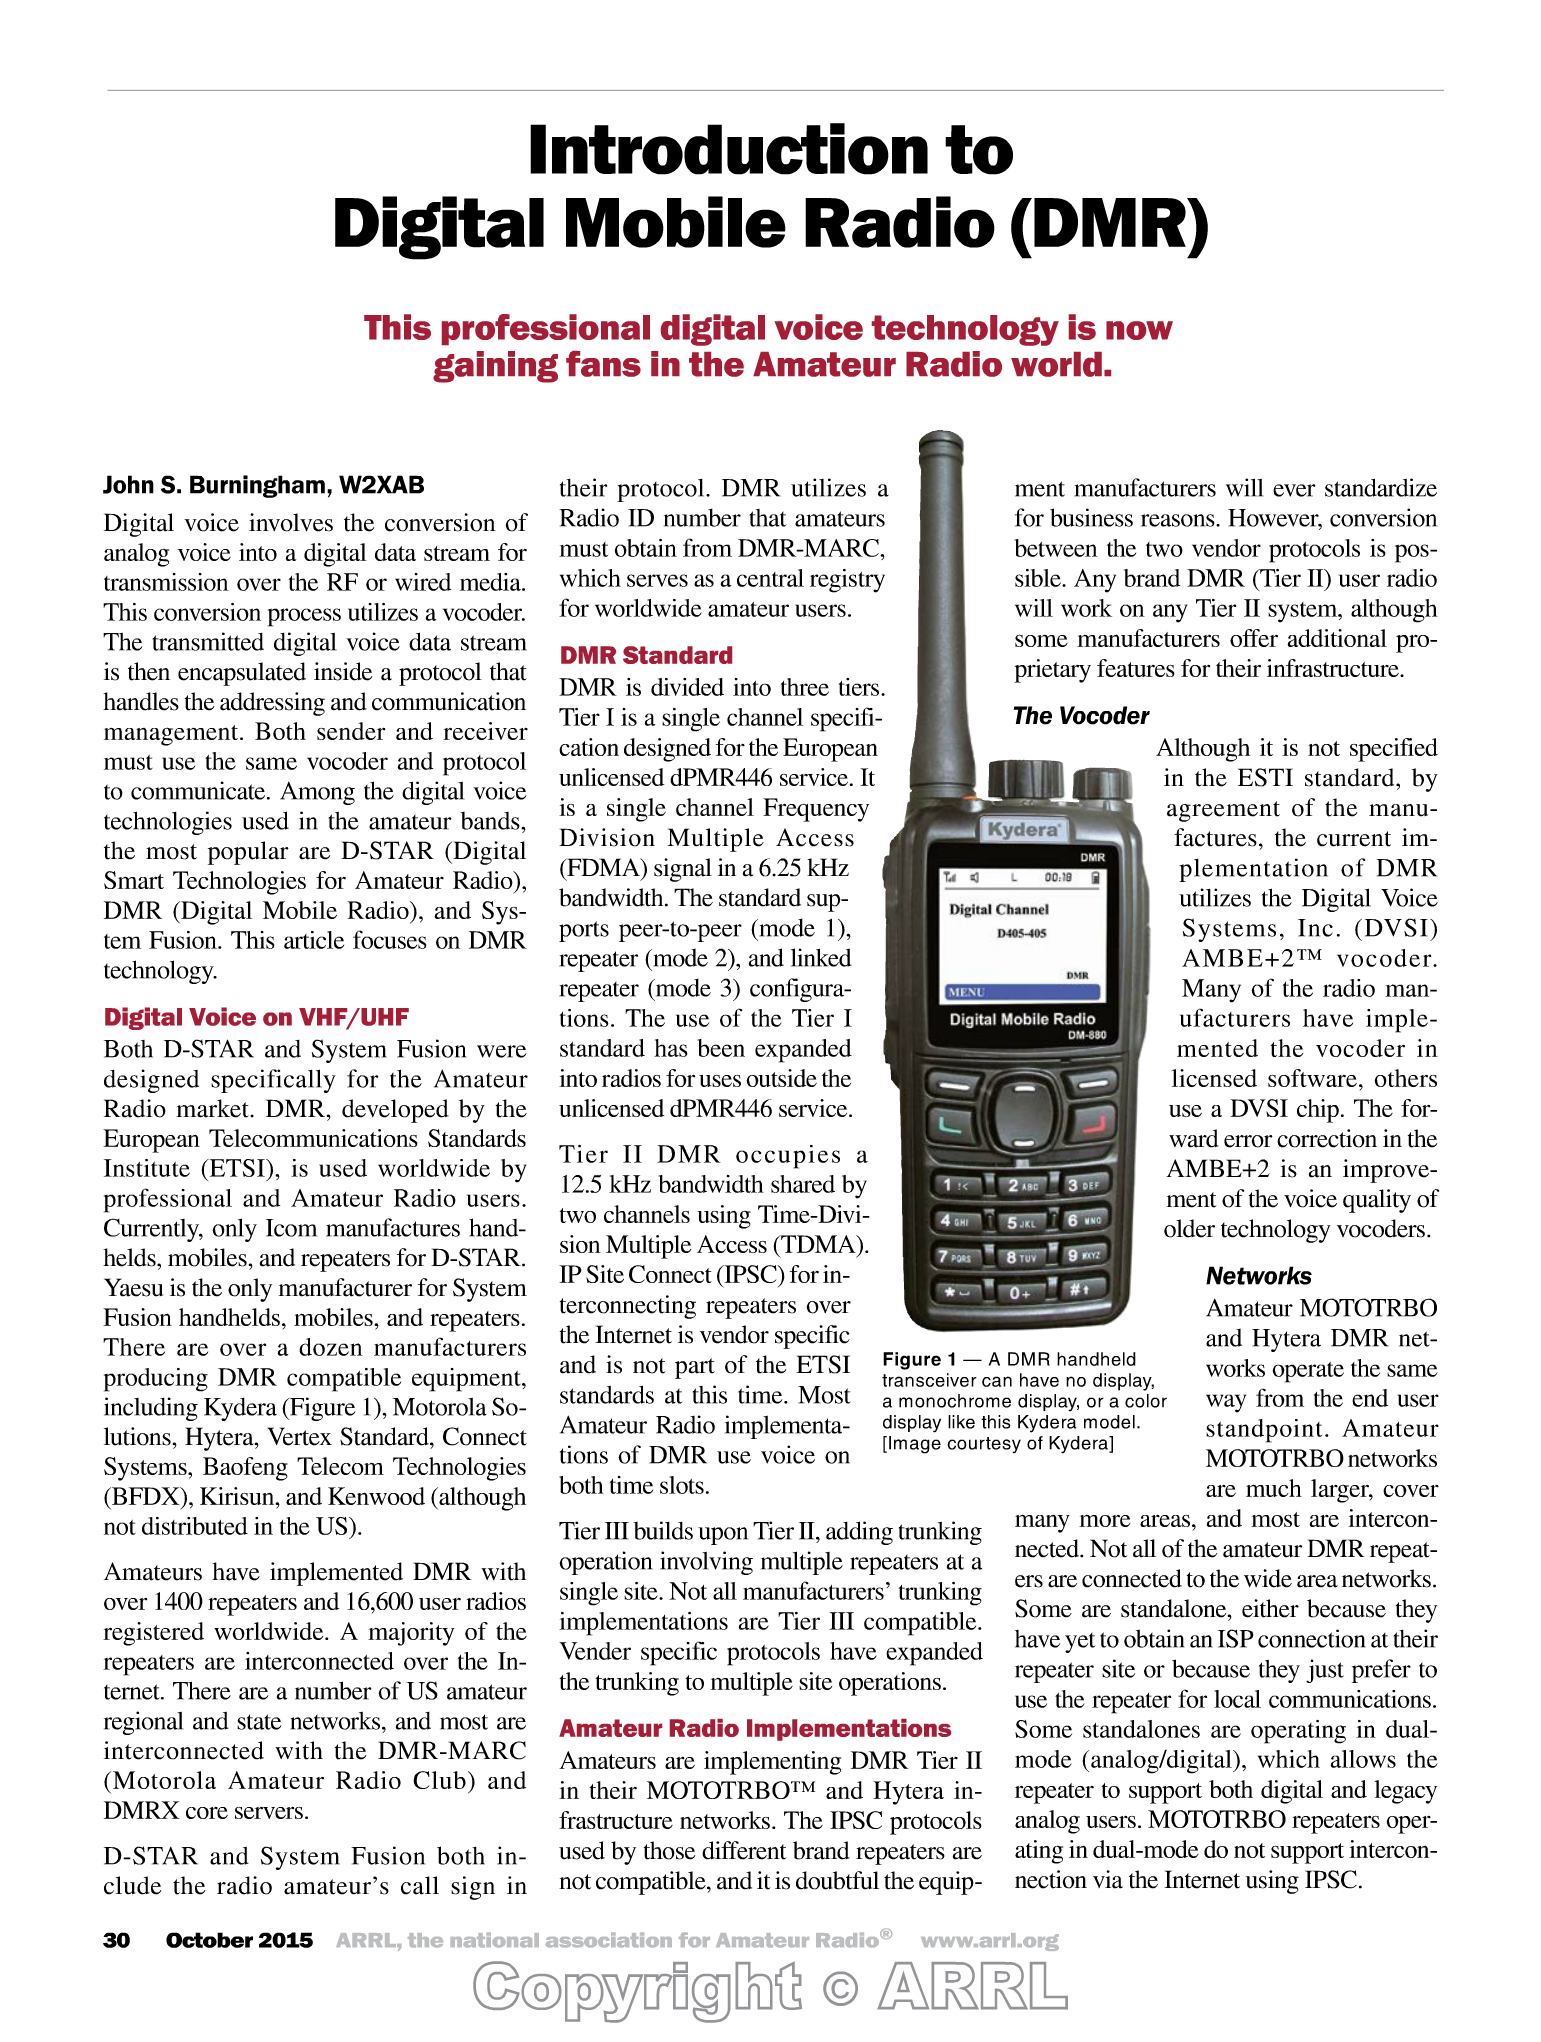 Introduction to Digital Mobile Radio {DMR) - PDF